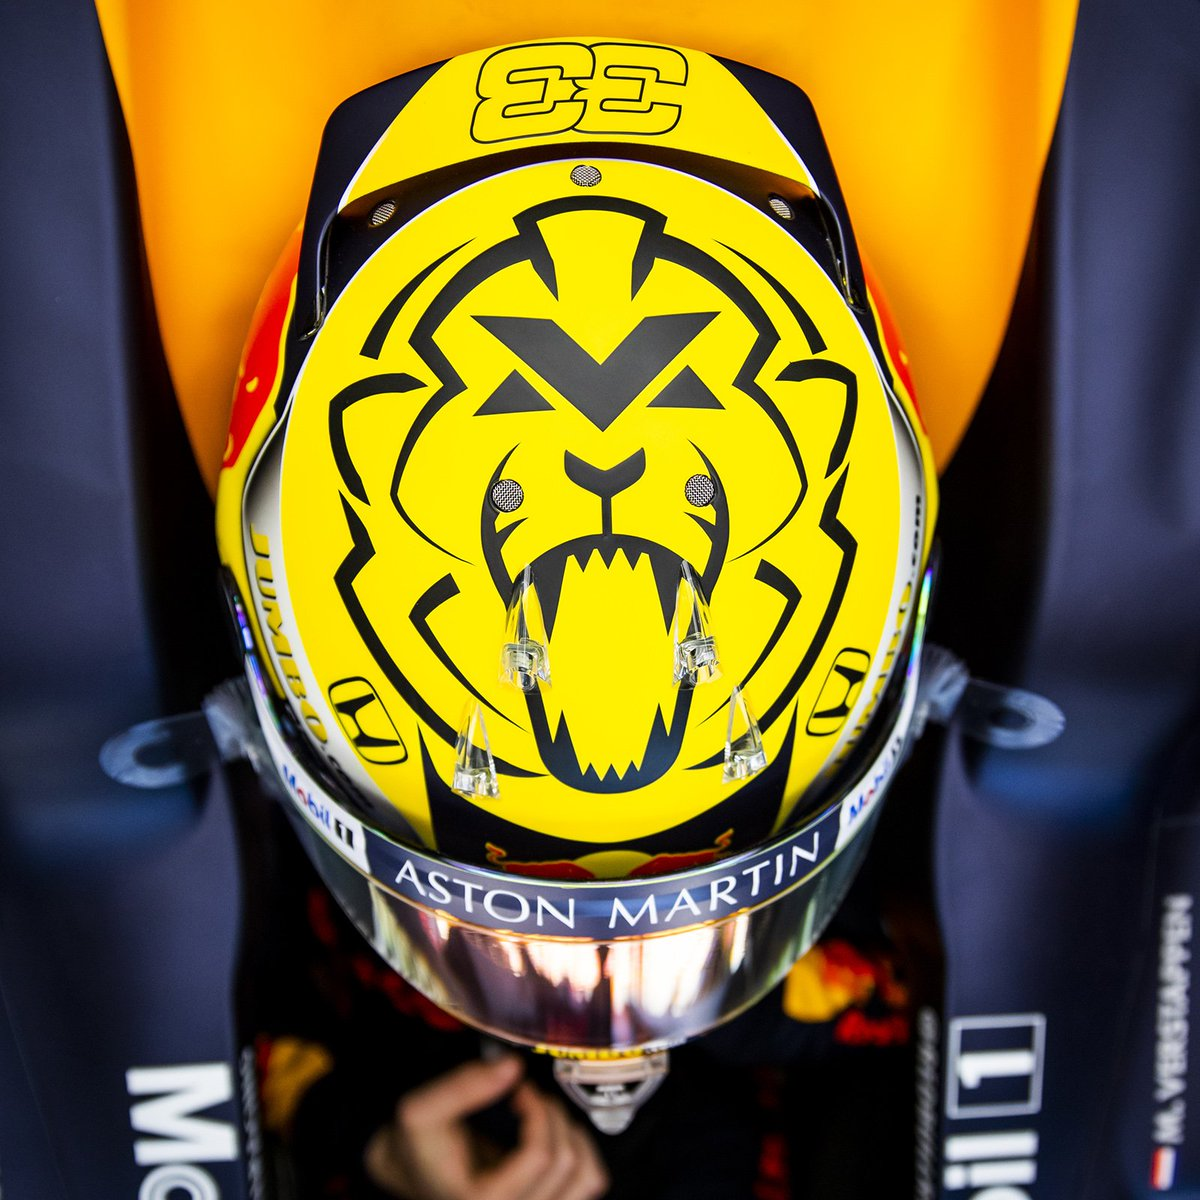 R A C E D A Y 💪🏻 Let's go for it! 🦁 #UnleashTheLion #OrangeArmy #AustrianGP 🇦🇹